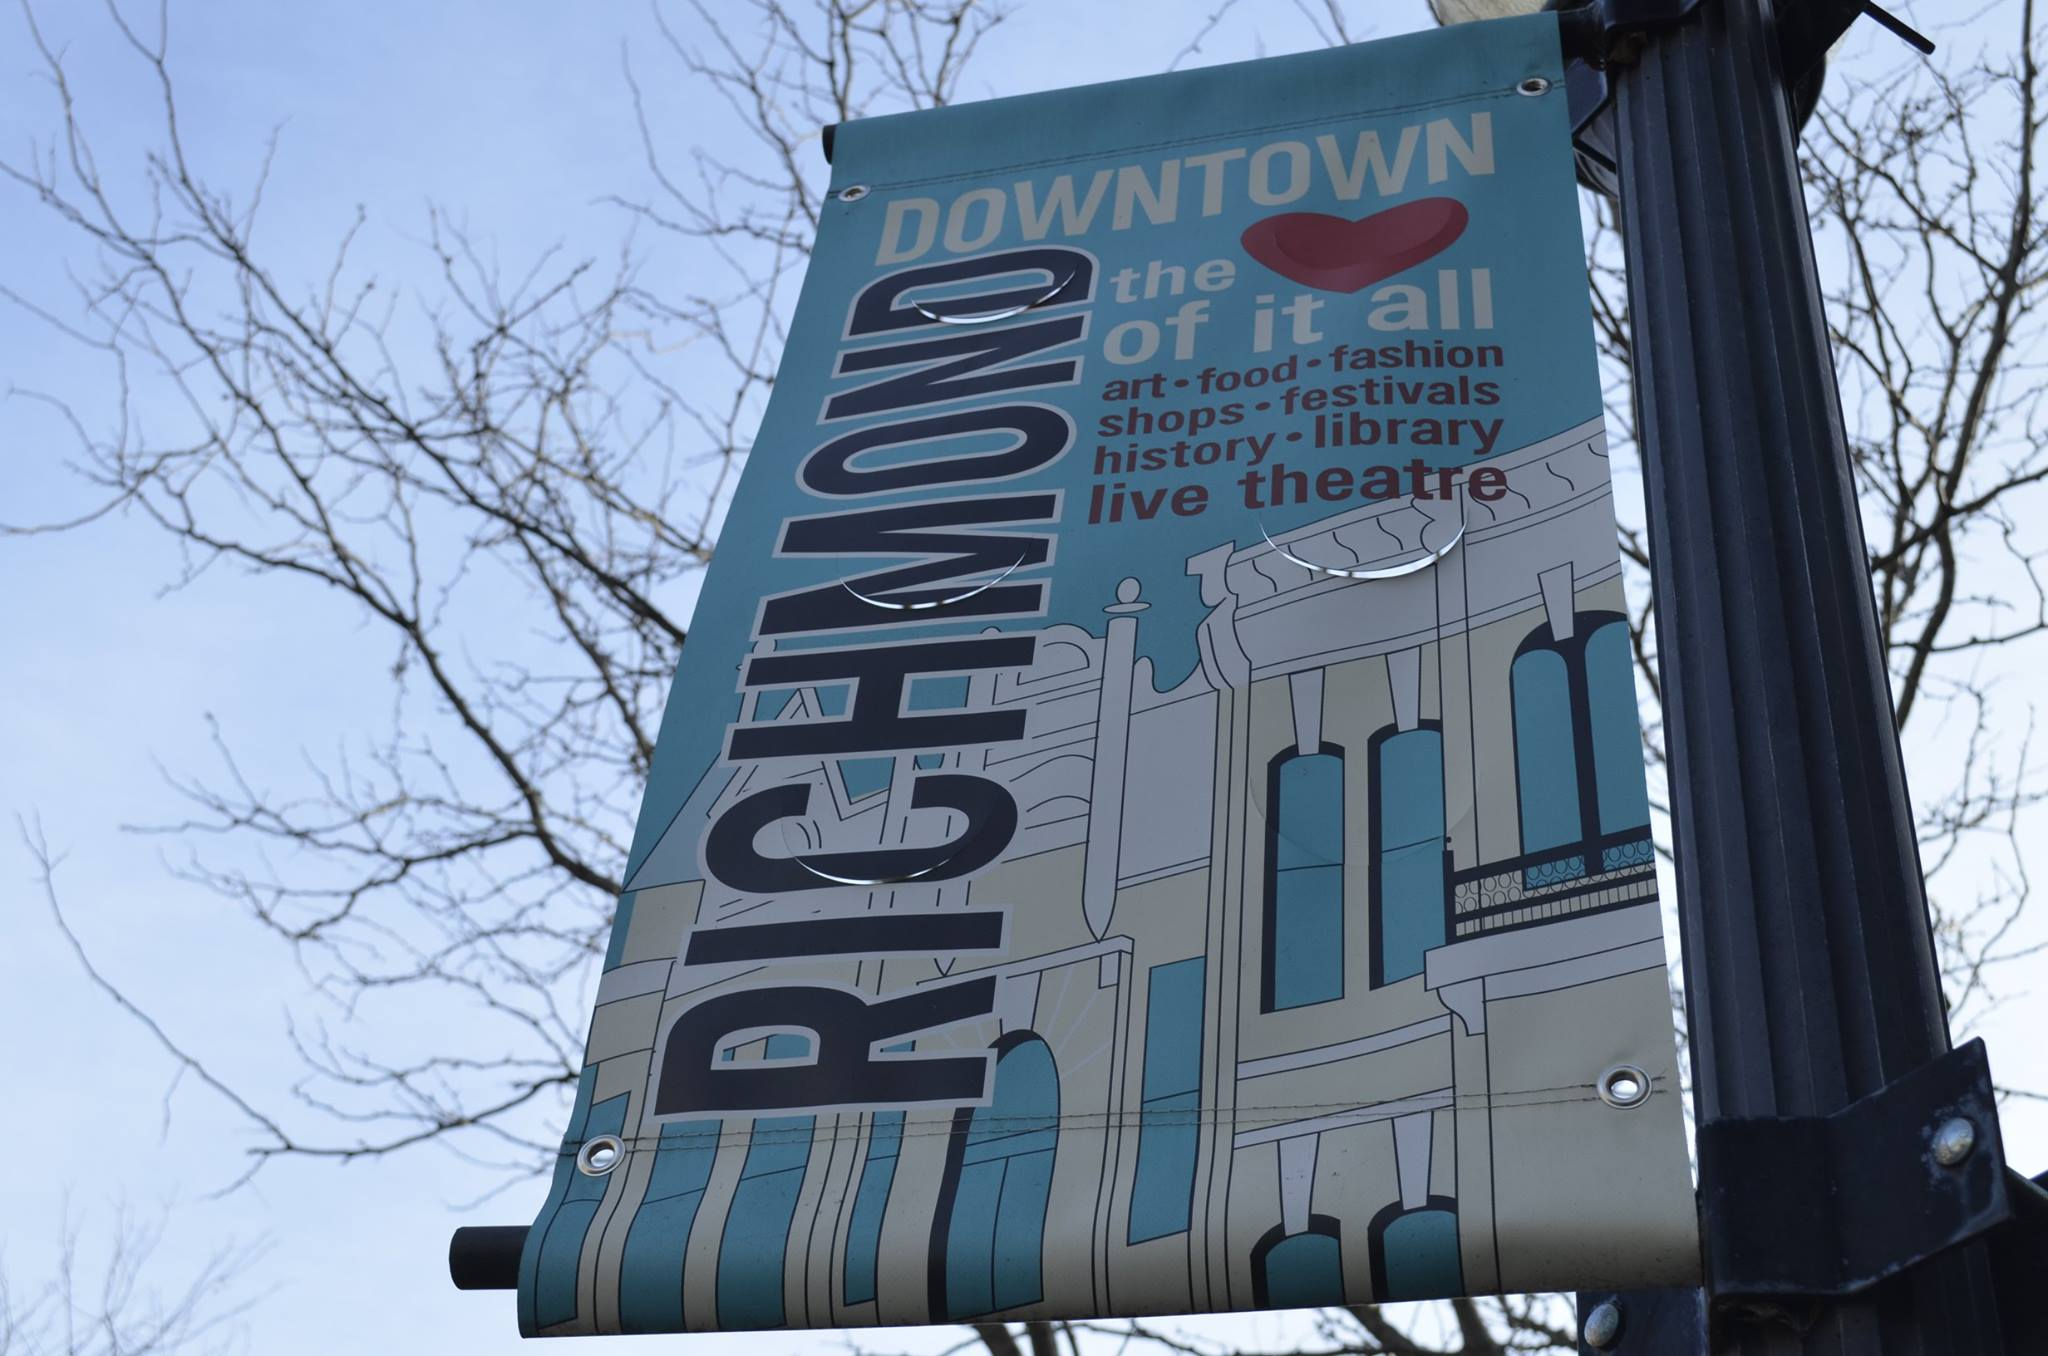 Aim Hometown Innovations Podcast - Richmond Mayor Dave Snow details transformative progress in the city